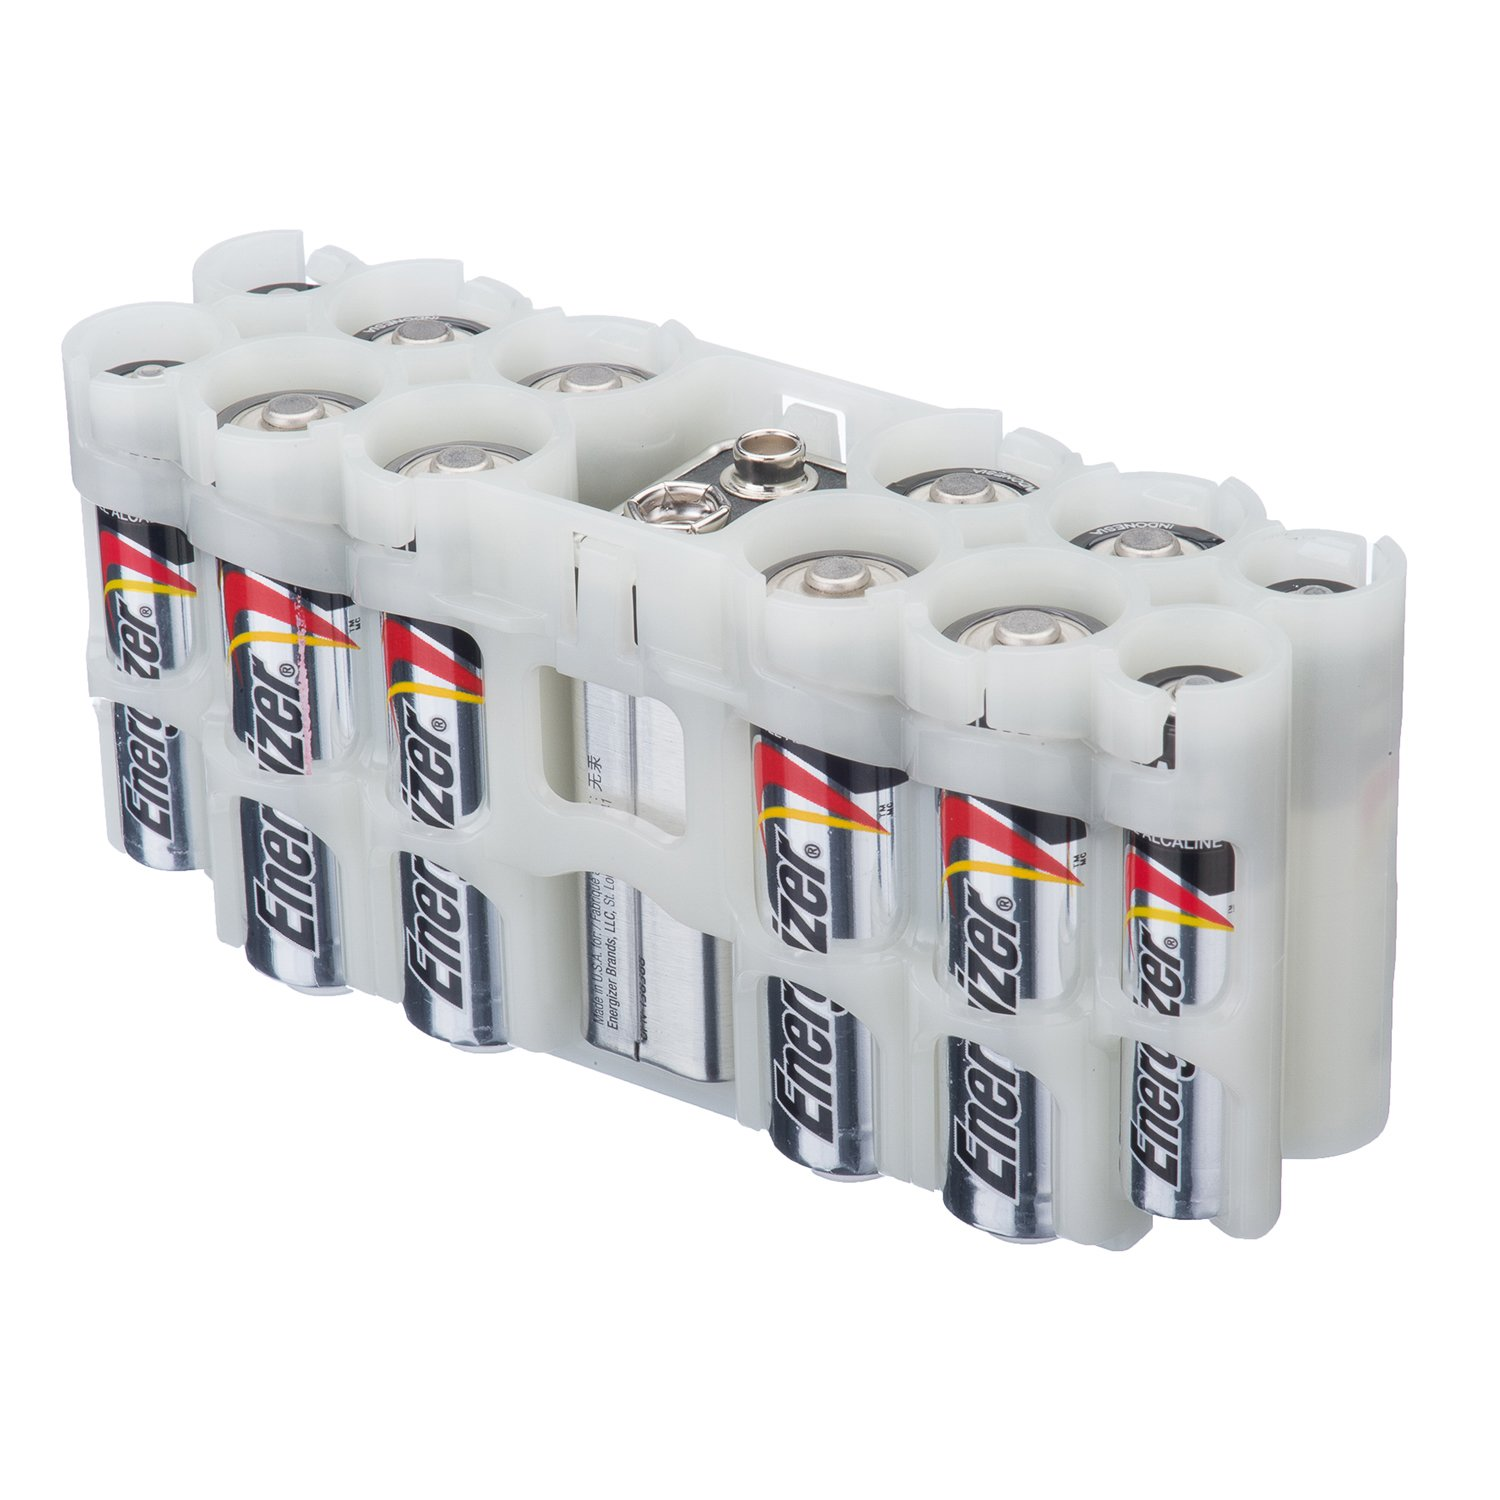 Storacell by Powerpax A9 Multi-Pack Battery Caddy, Glow-in-the-Dark Moonshine